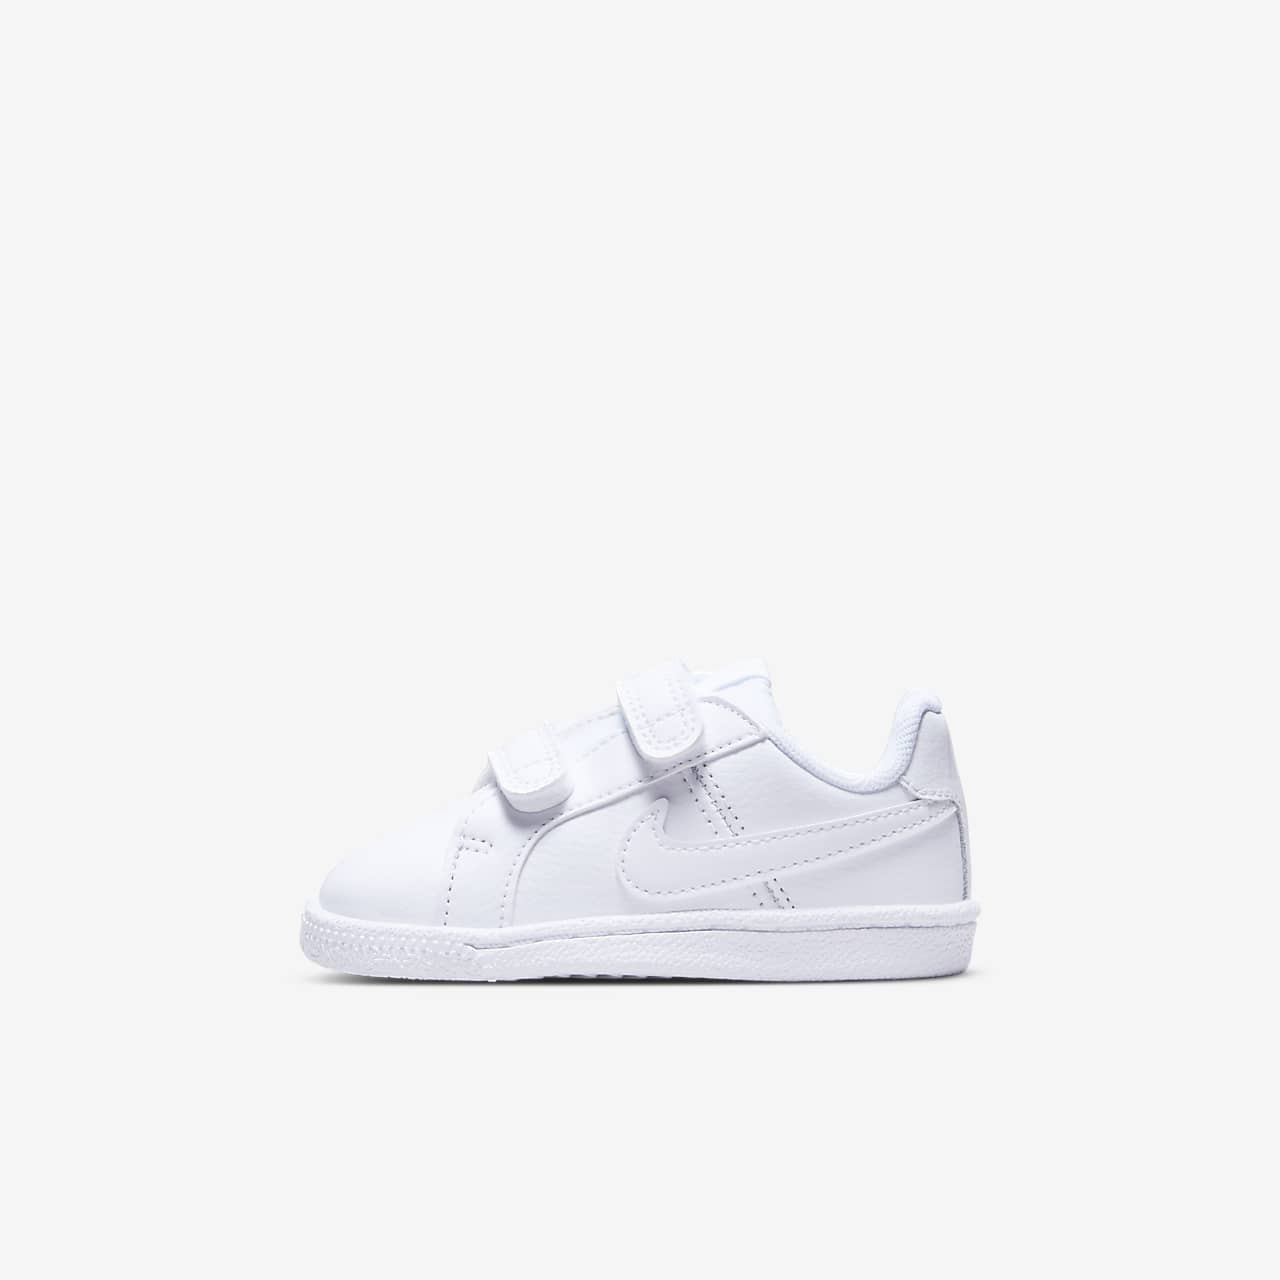 Nike Court Royale (TDV) 婴童运动童鞋